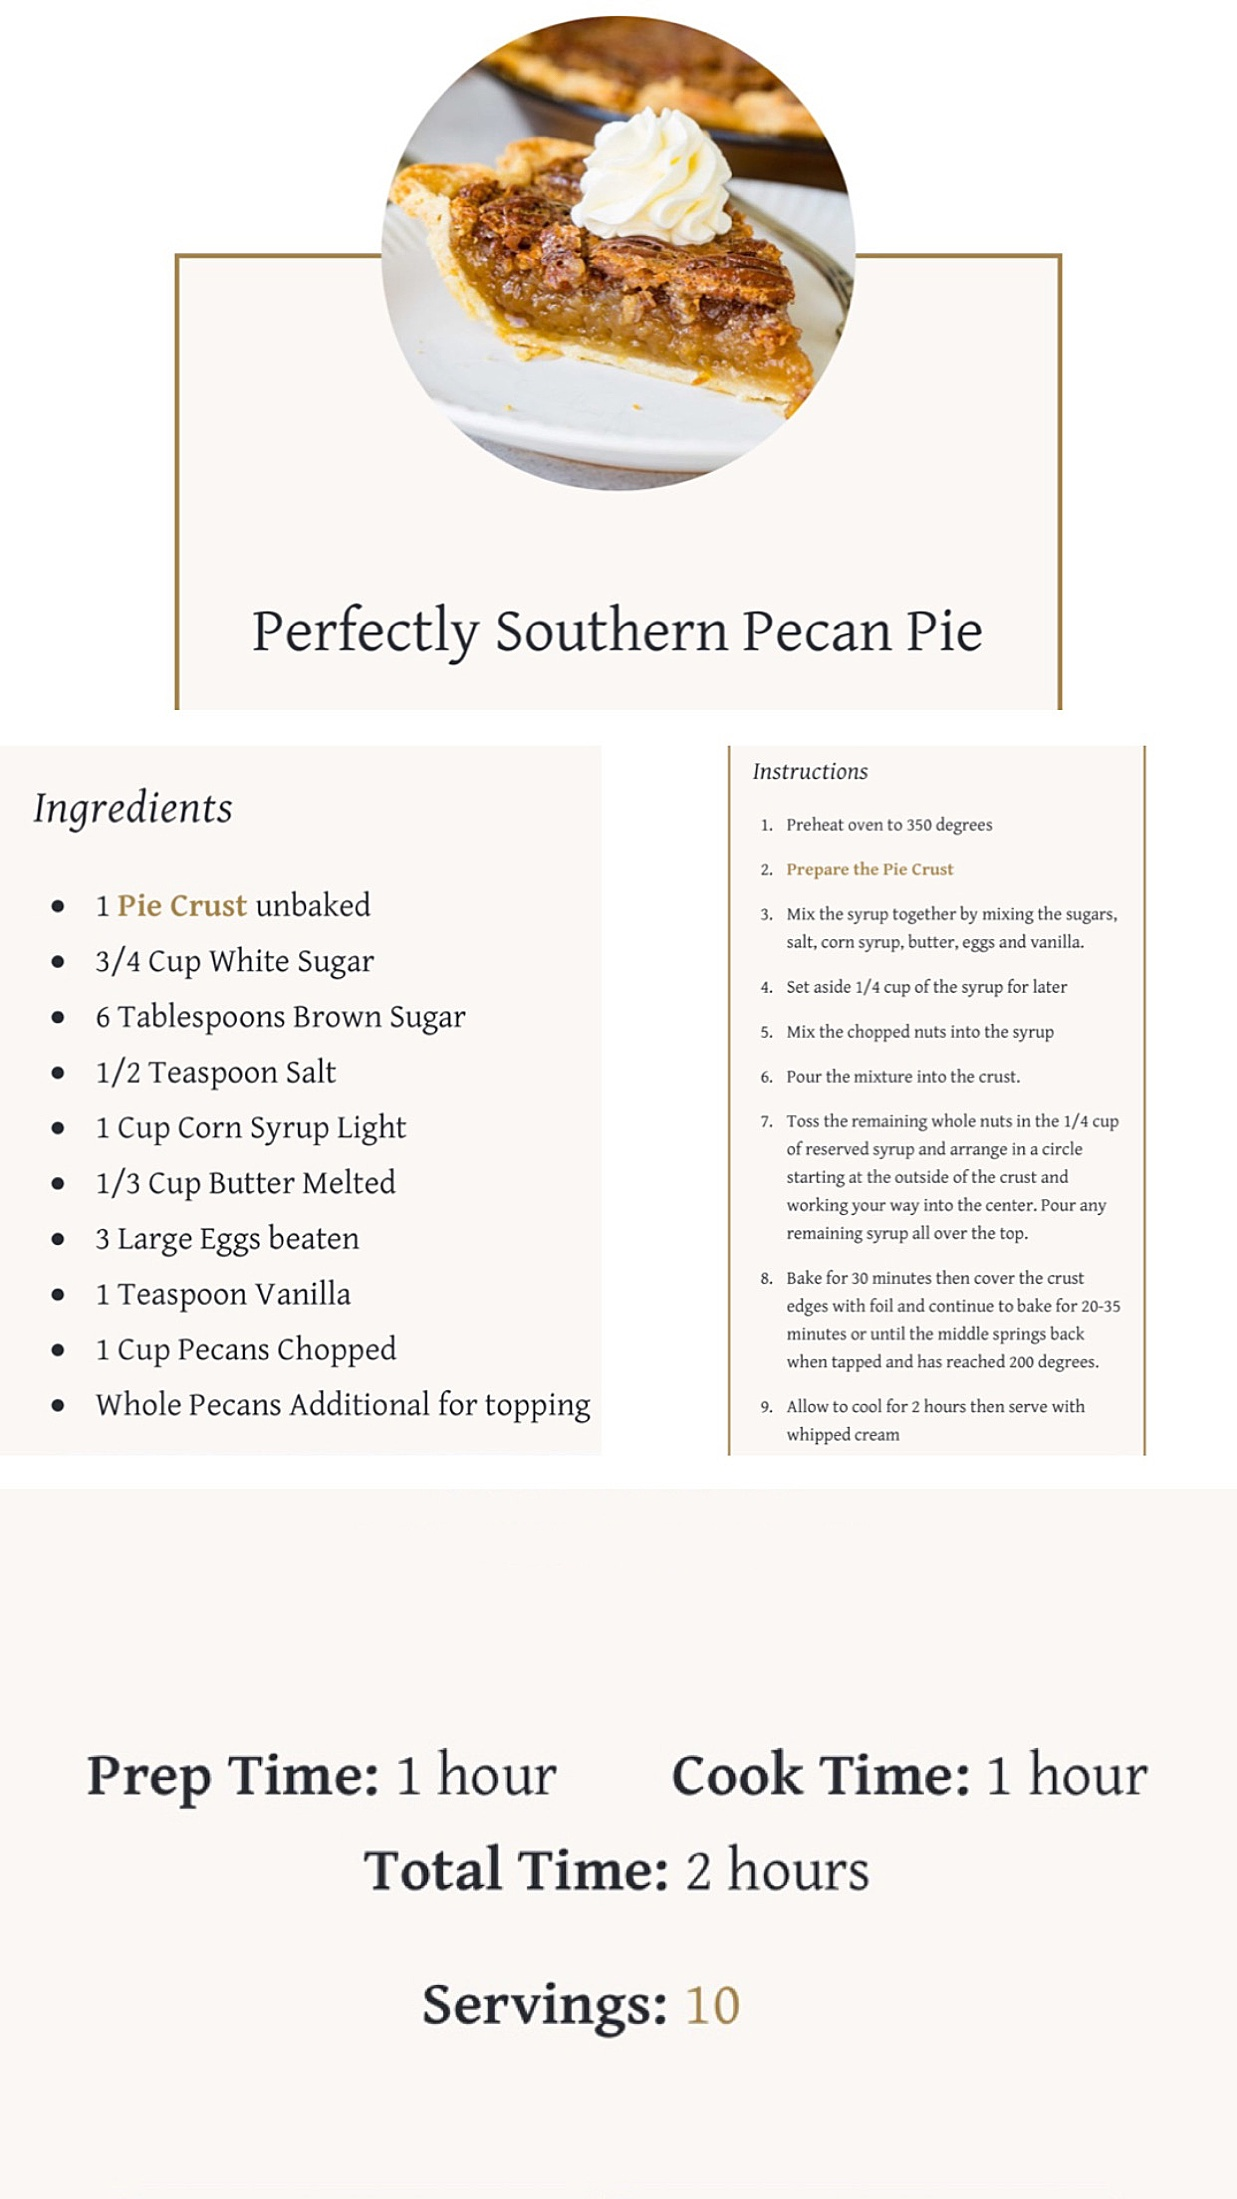 southern pecan pie recipe, holiday pecan pie, olivia rink recipe, olivia rink mom, olivia rink christmas, 2020 baking recipe,